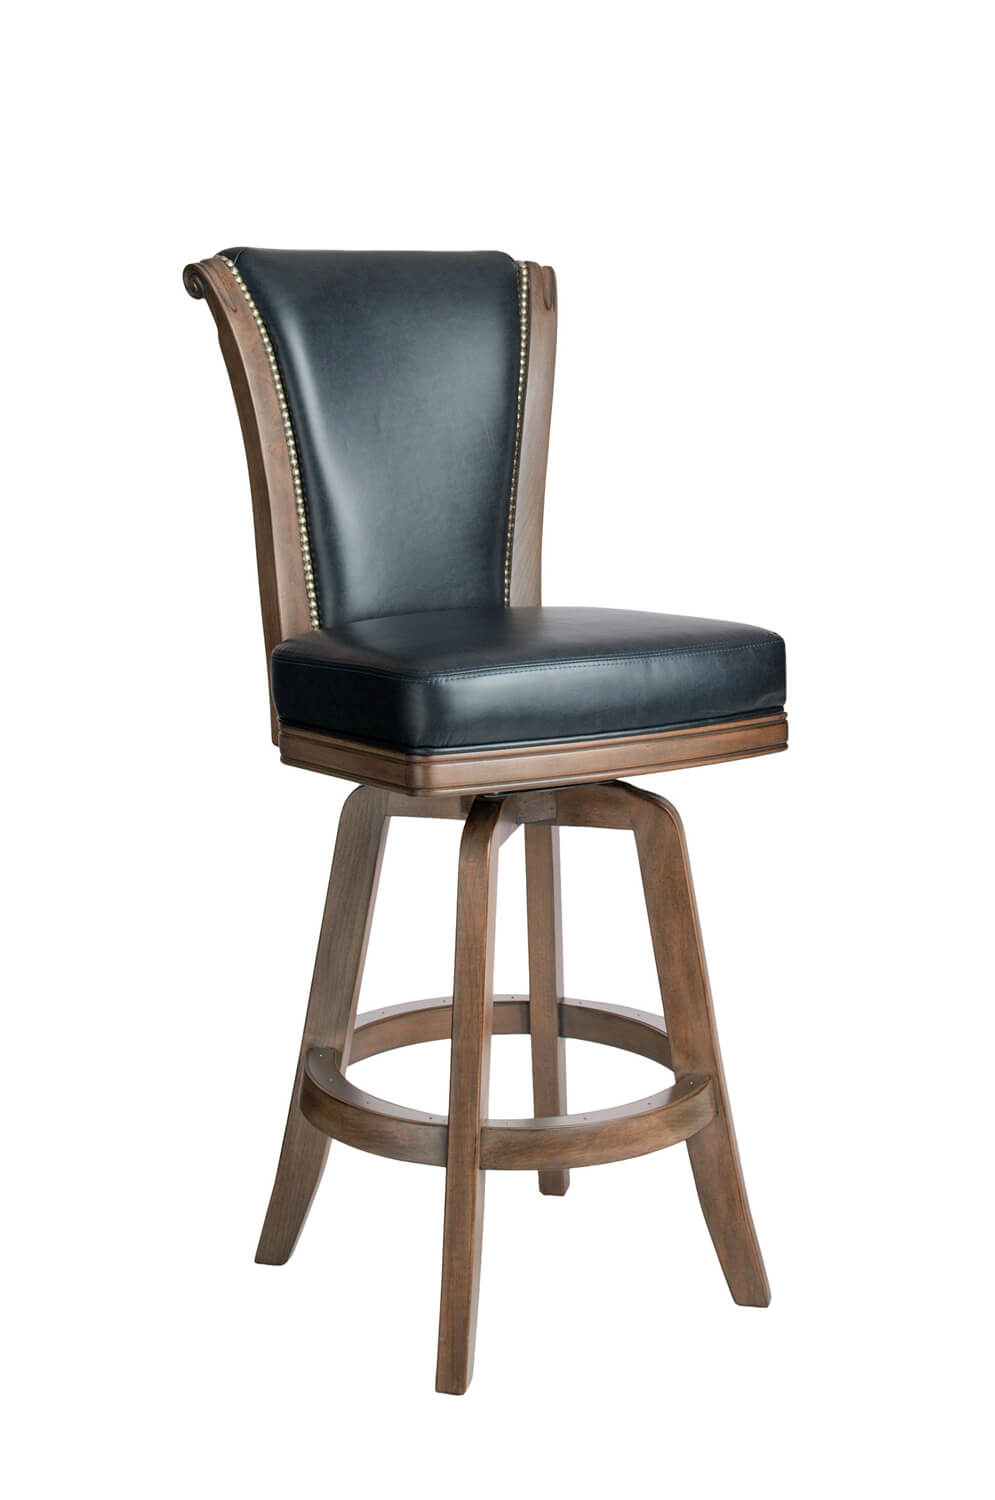 Darafeev's Classic Wooden Flexback Upholstered Swivel Stool